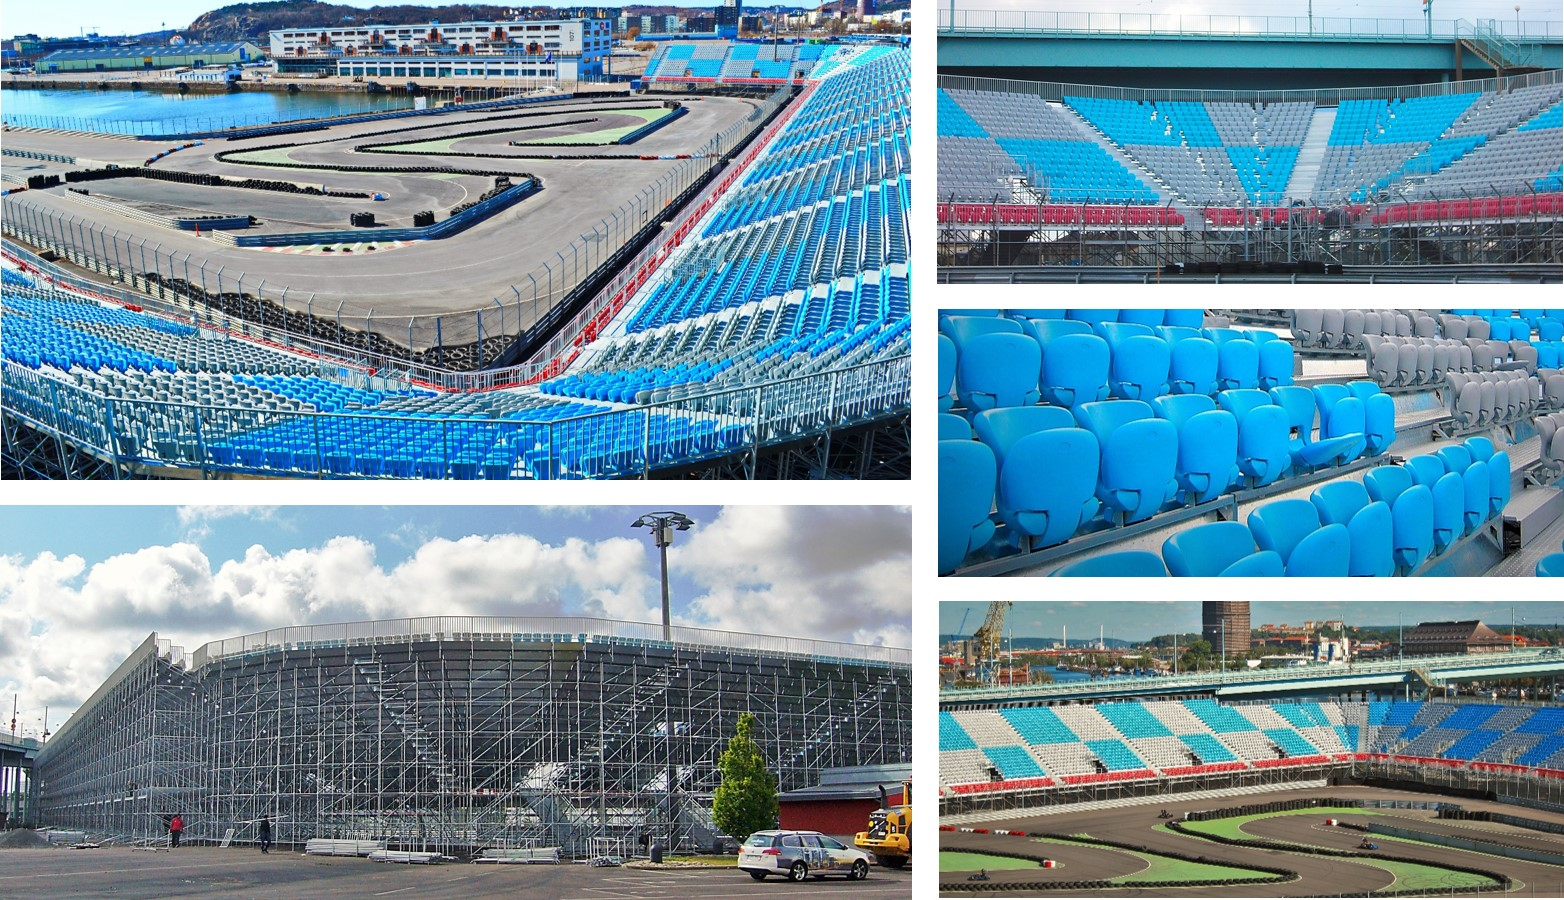 Volvo-Polestar Circuit in Gothenburg (Sweden)2012 10,700 Tip-Up seats PS-08 of Pakar Grandstand tribune bleacher